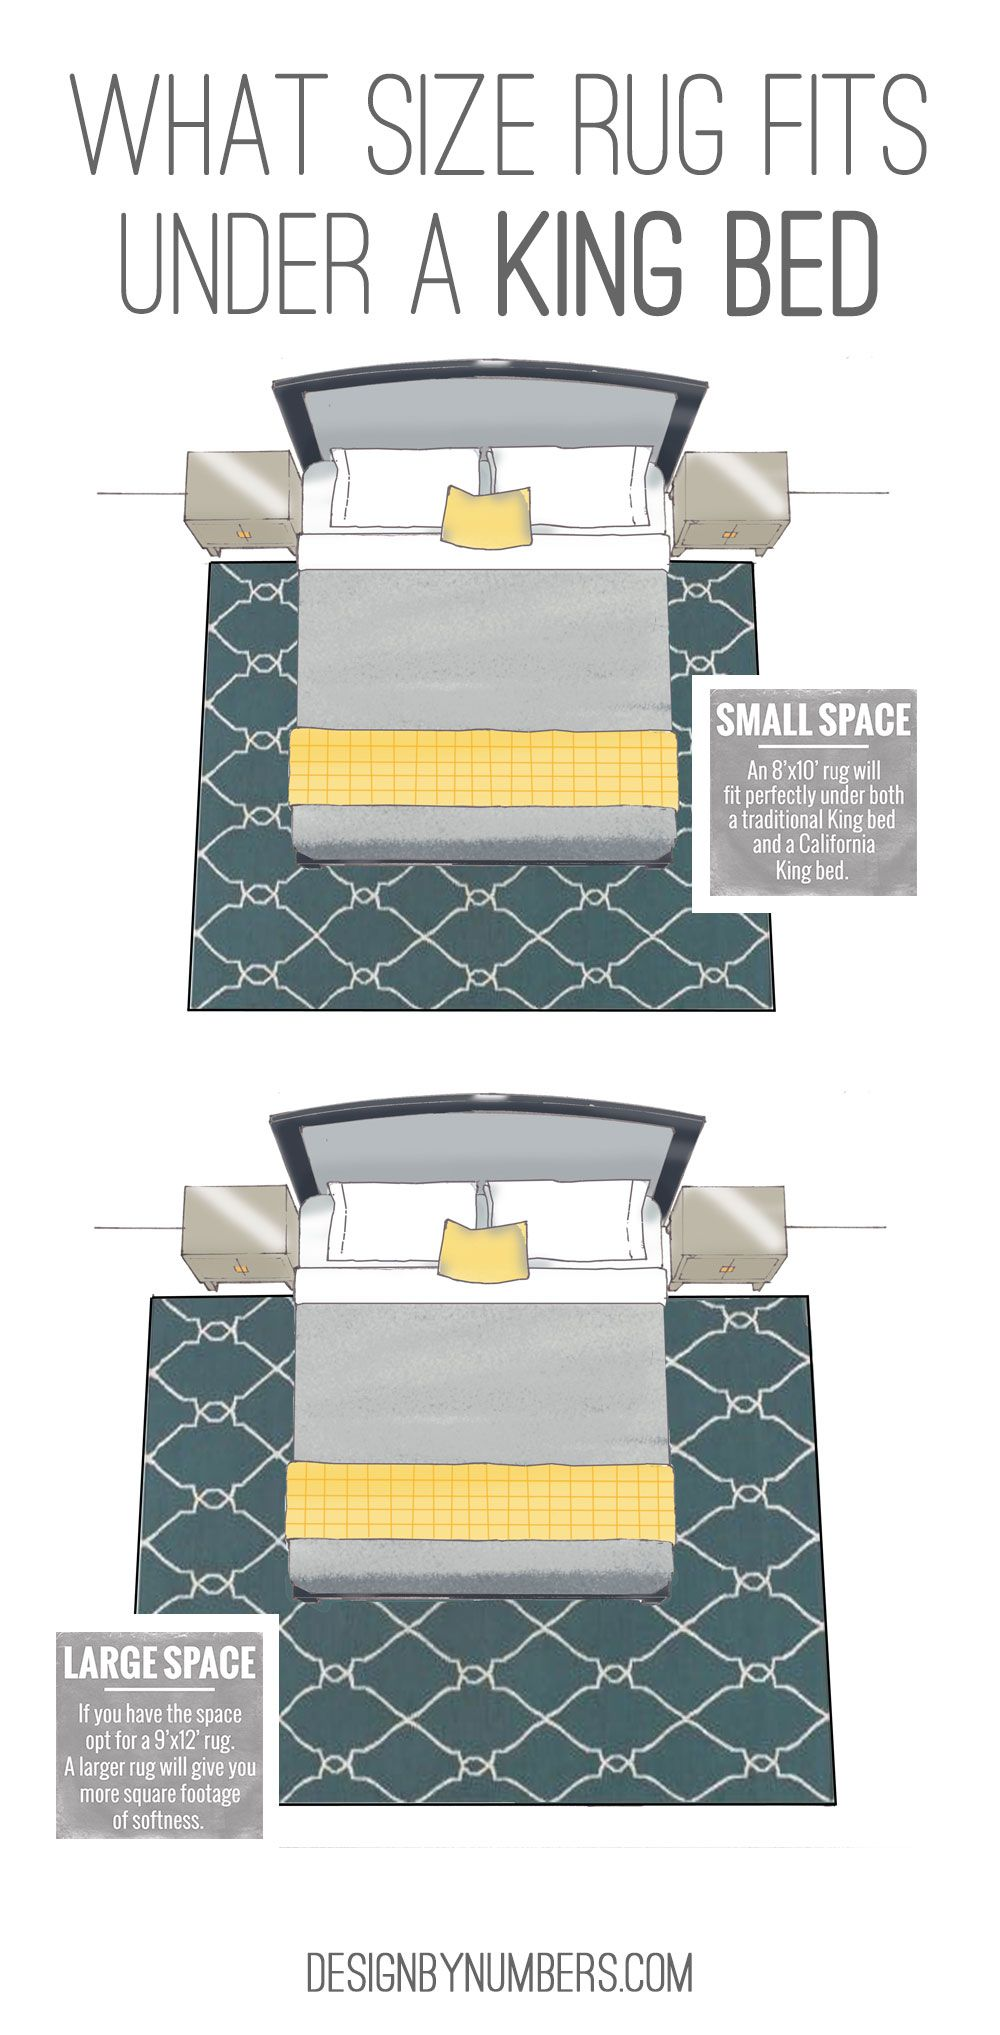 What size rug fits under a king bed design by numbers living pinterest bed design king